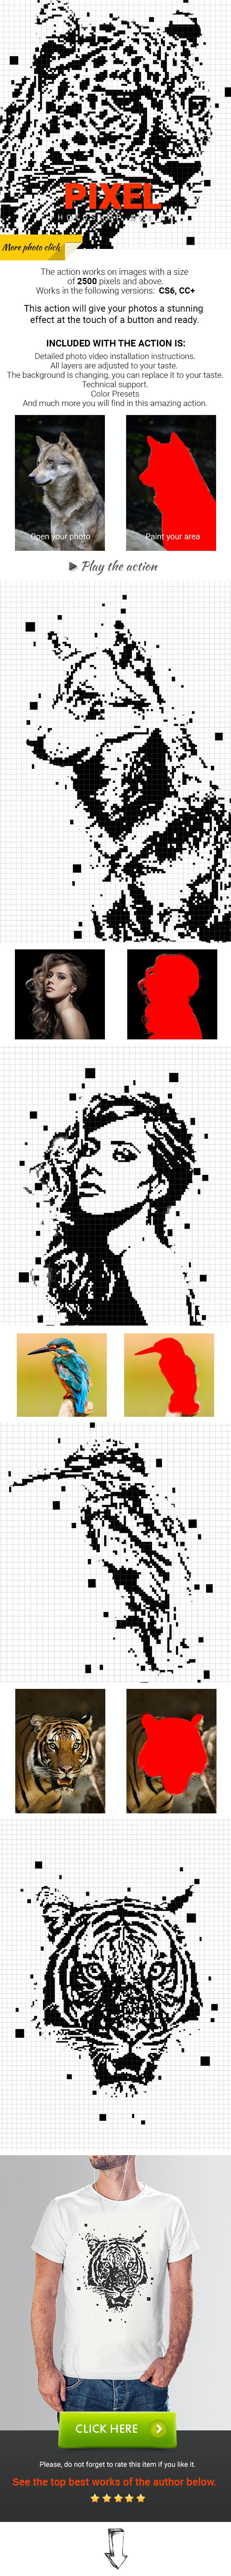 Pixel Photoshop Action - Photo Effects Actions